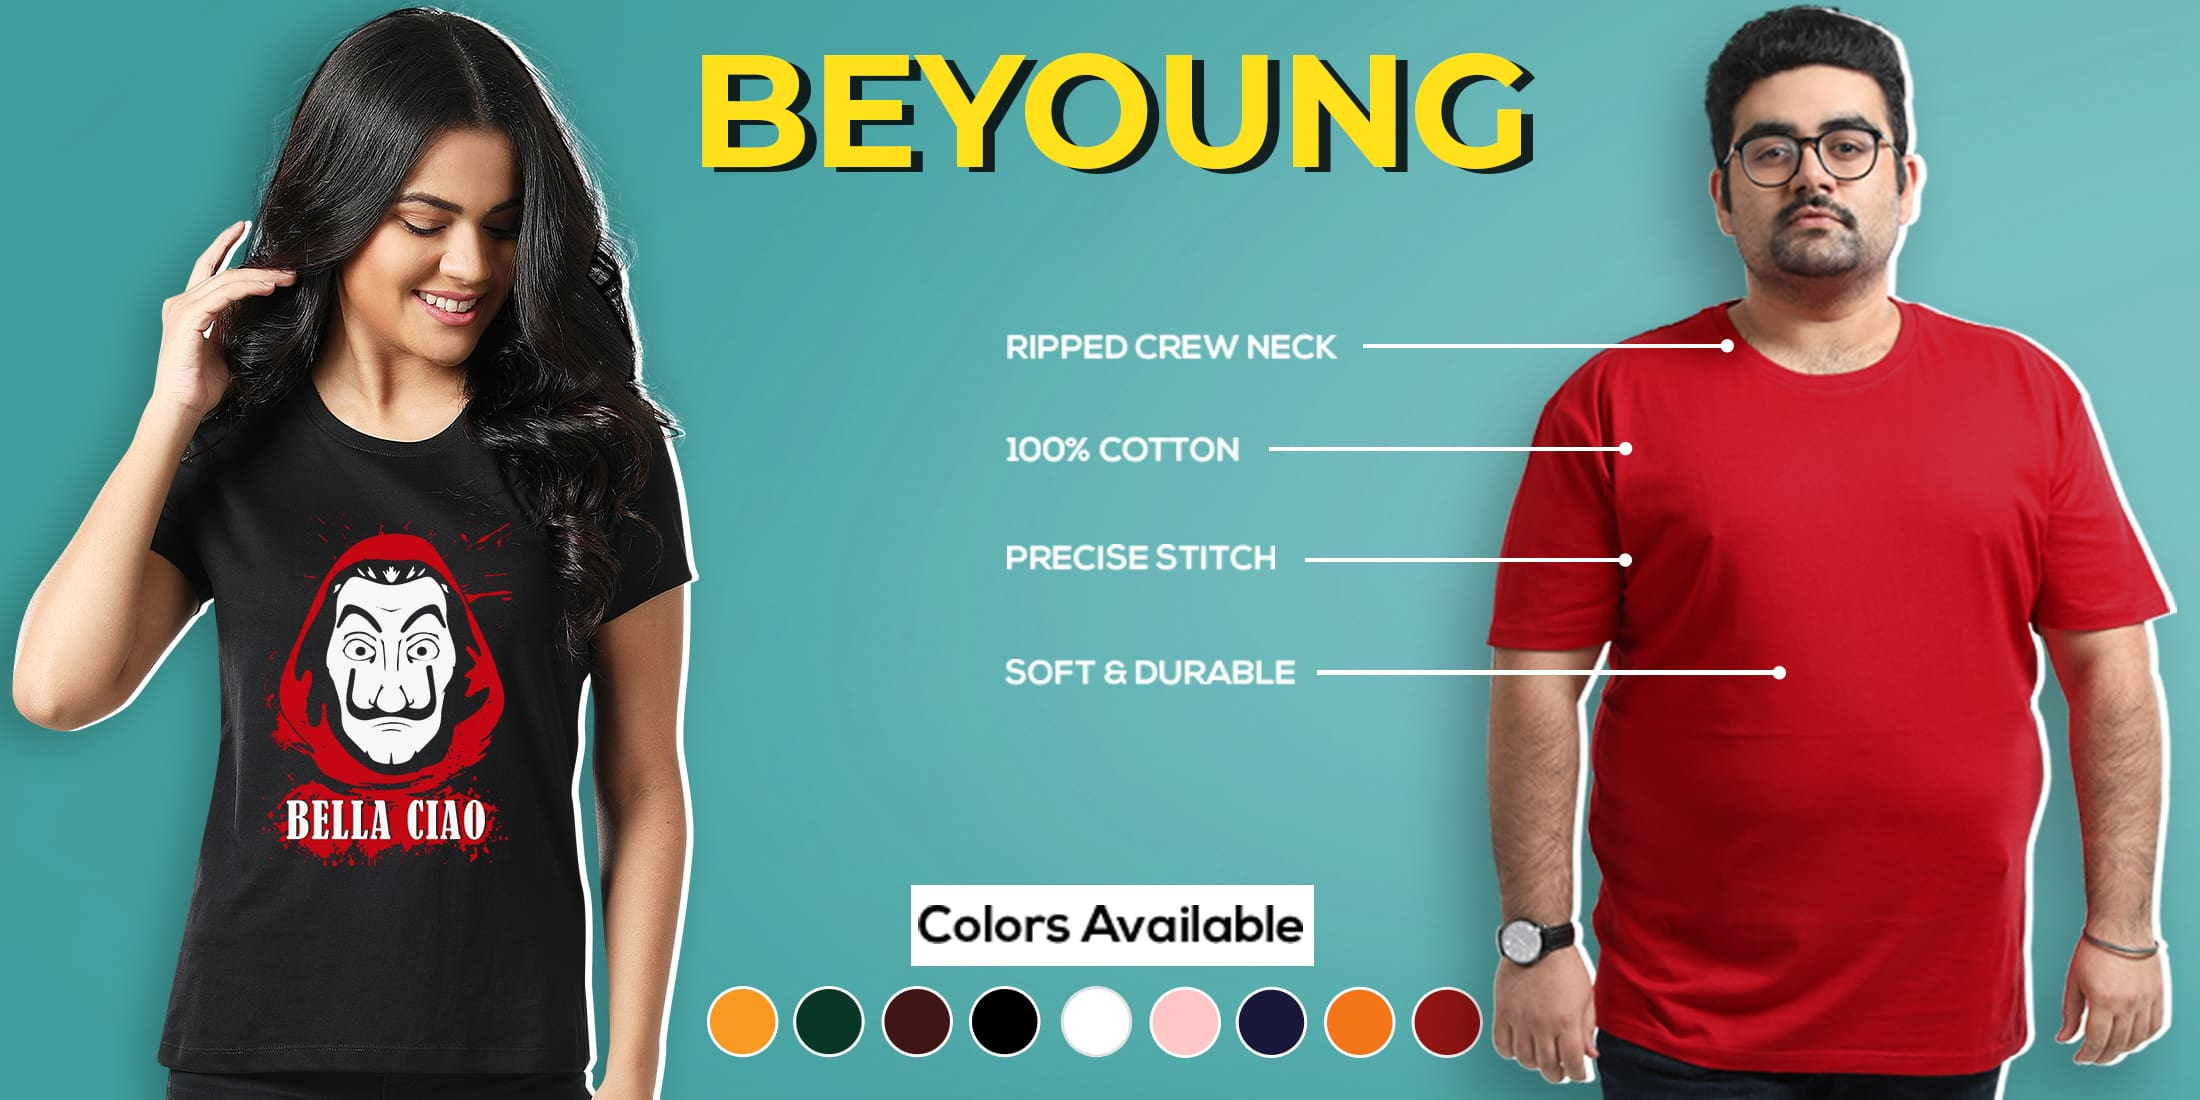 Why Beyoung is Among the Best T Shirt  …